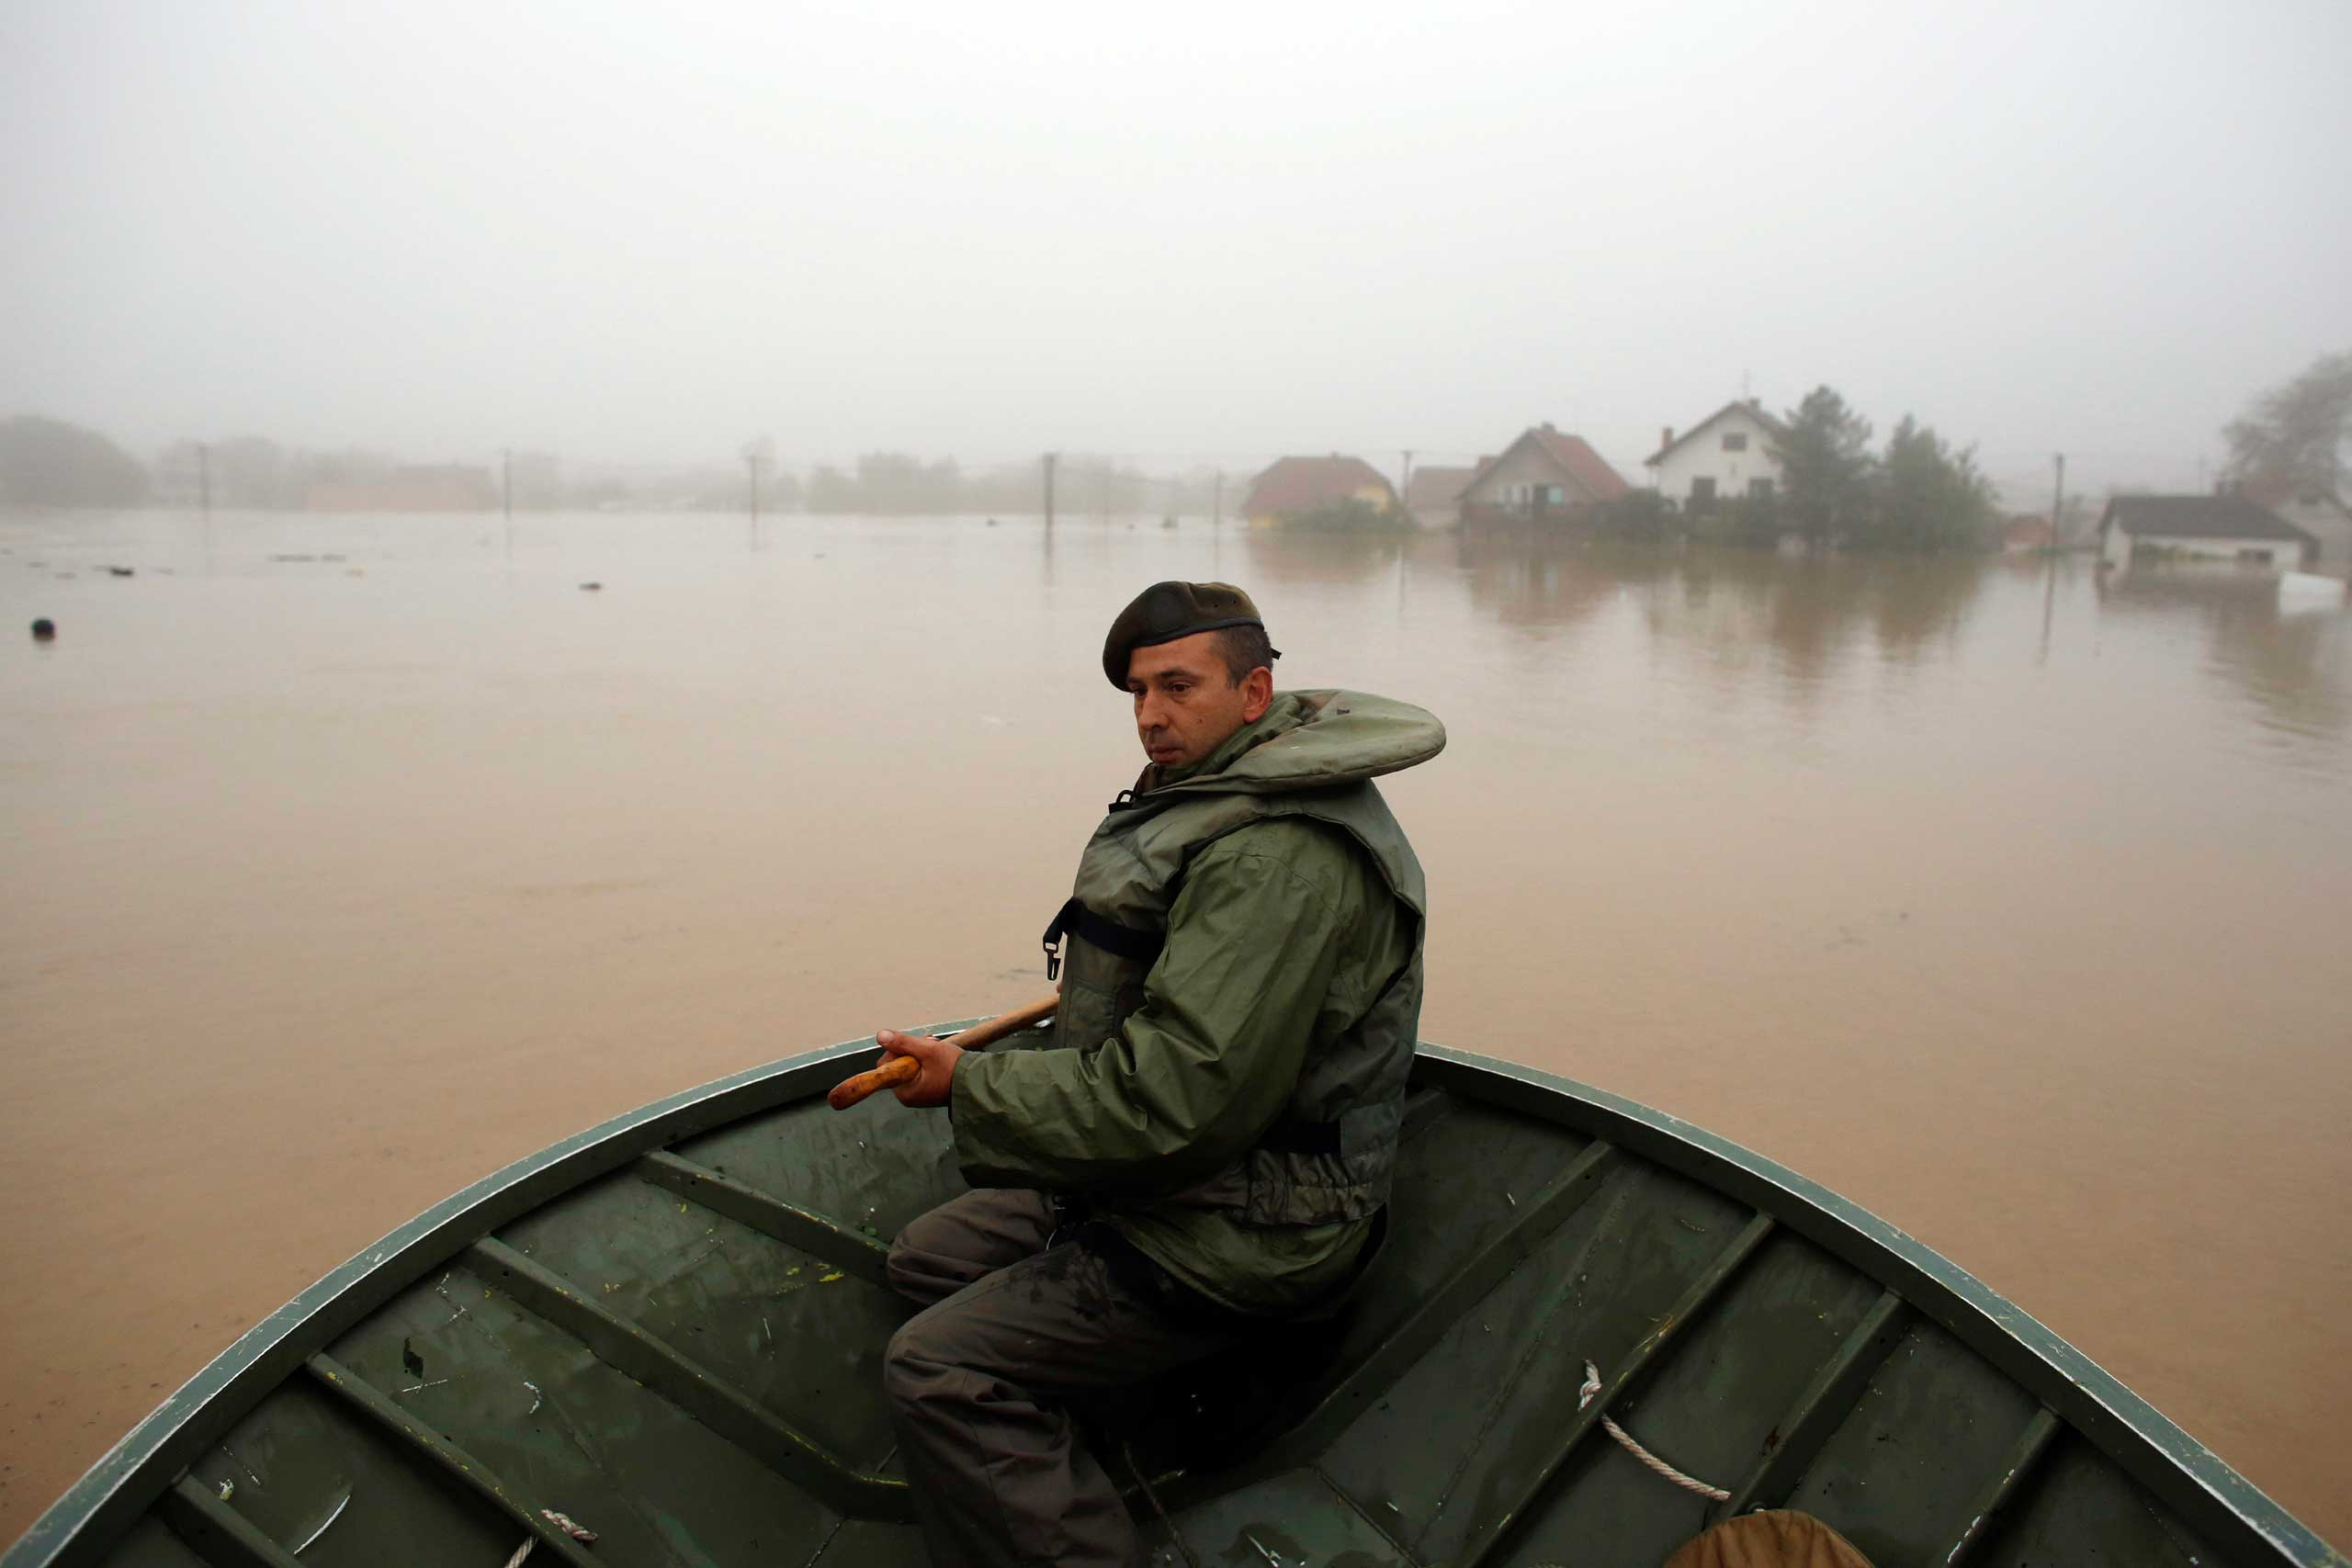 <b>Balkan Floods</b> A Serbian army soldier rows a boat as he searches for people to be evacuated in the town of Obrenovac, southwest of Belgrade, Serba on May 16, 2014. The heaviest rains and floods in 120 years have hit Bosnia and Serbia.